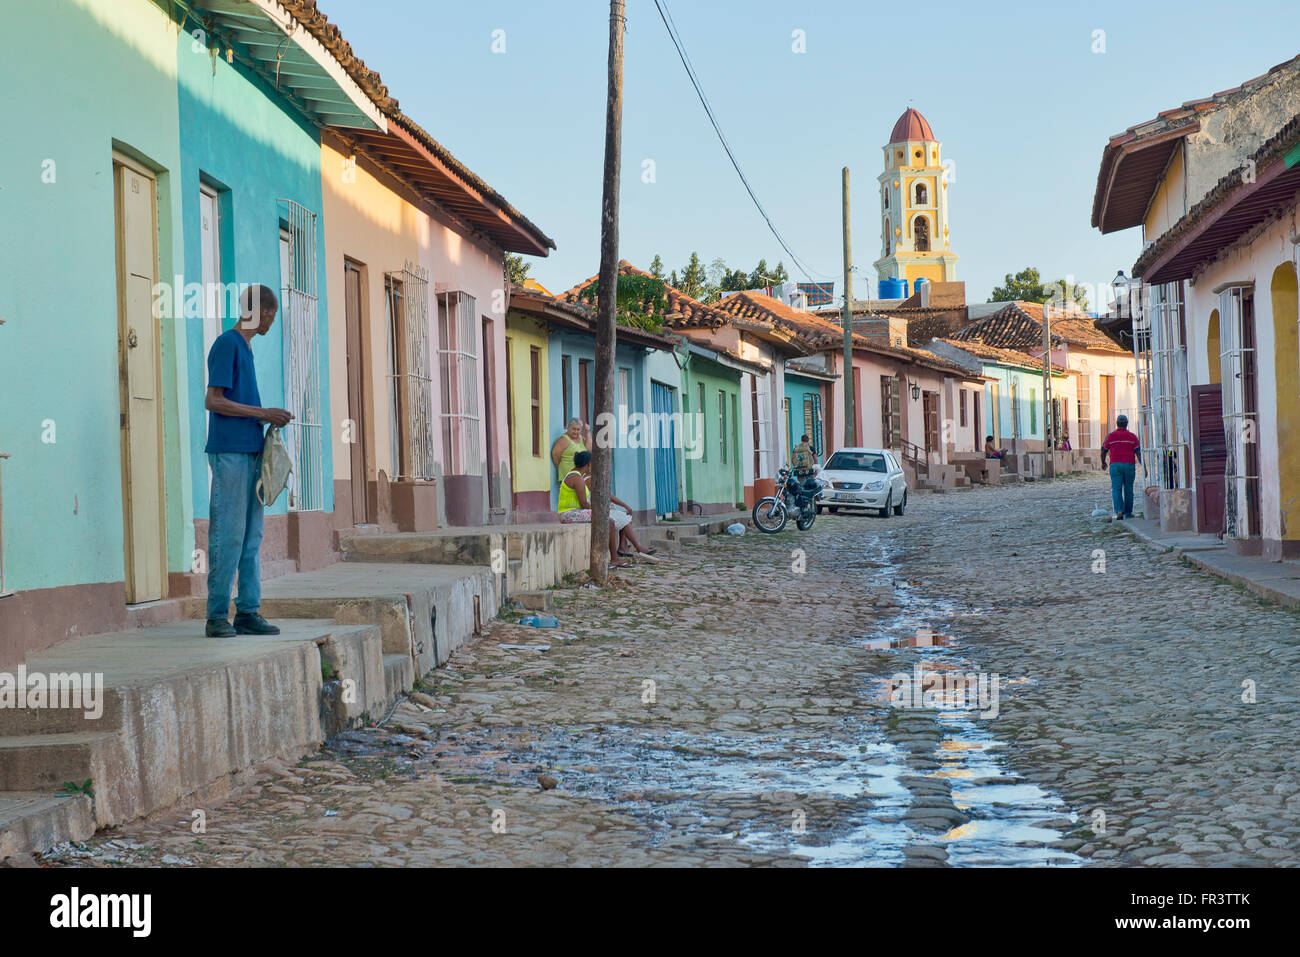 A street in the old colonial town of Trinidad, Cuba with the Iglesia y Convento de San Francisco in the background. - Stock Image